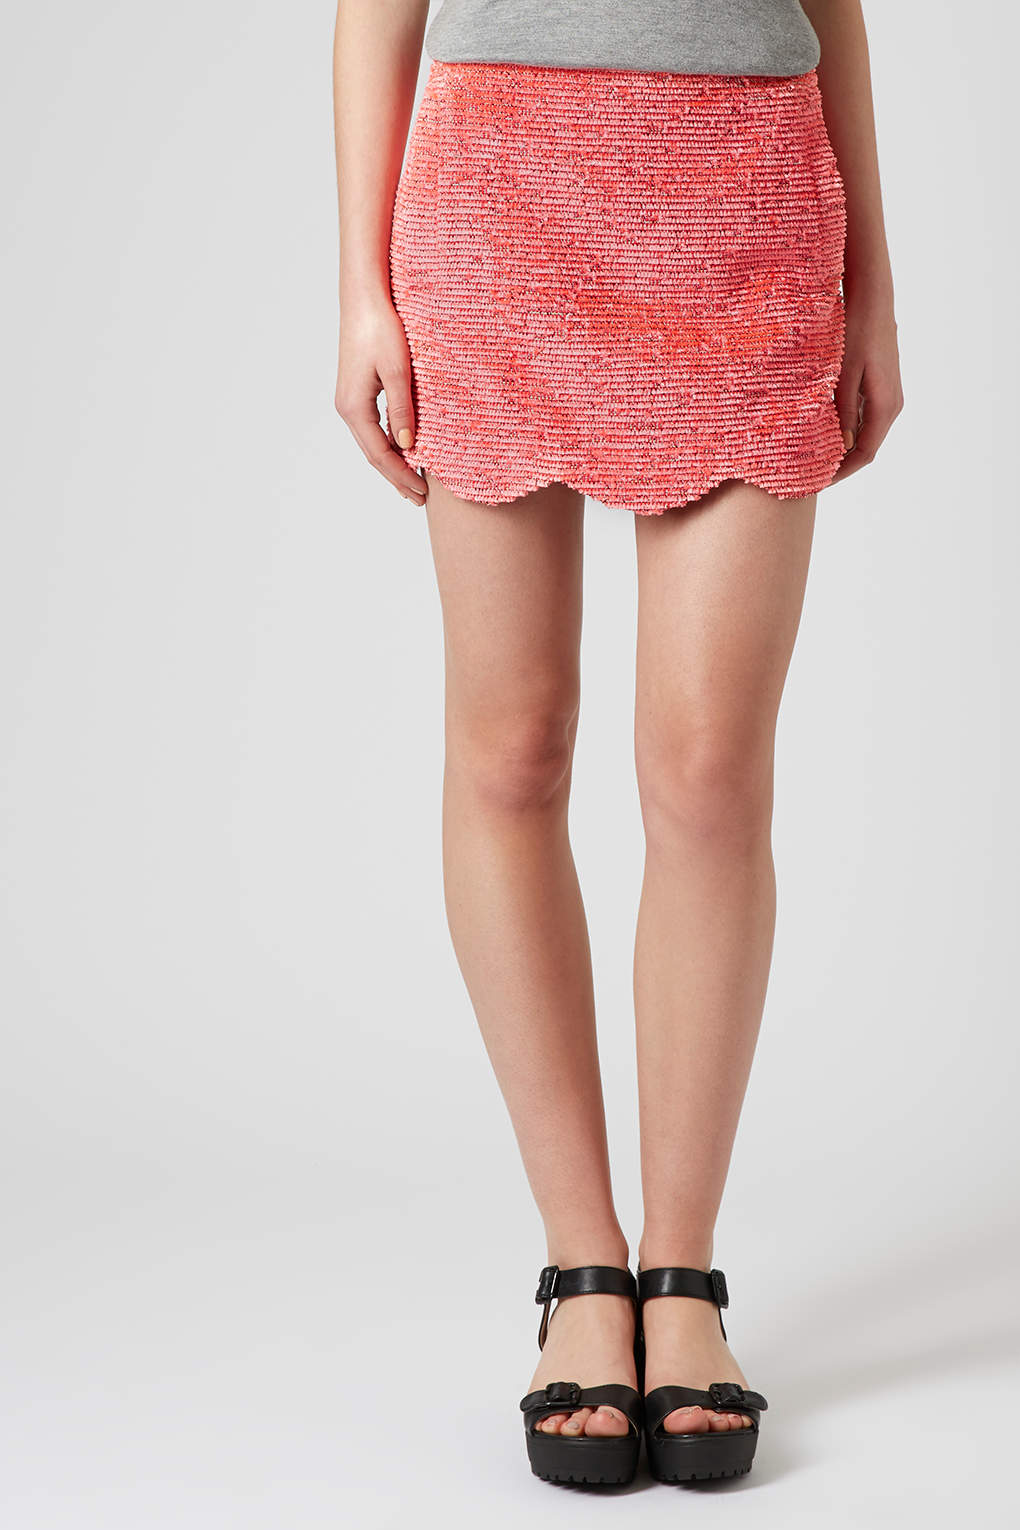 Fring Scallop Skirt by TopShop